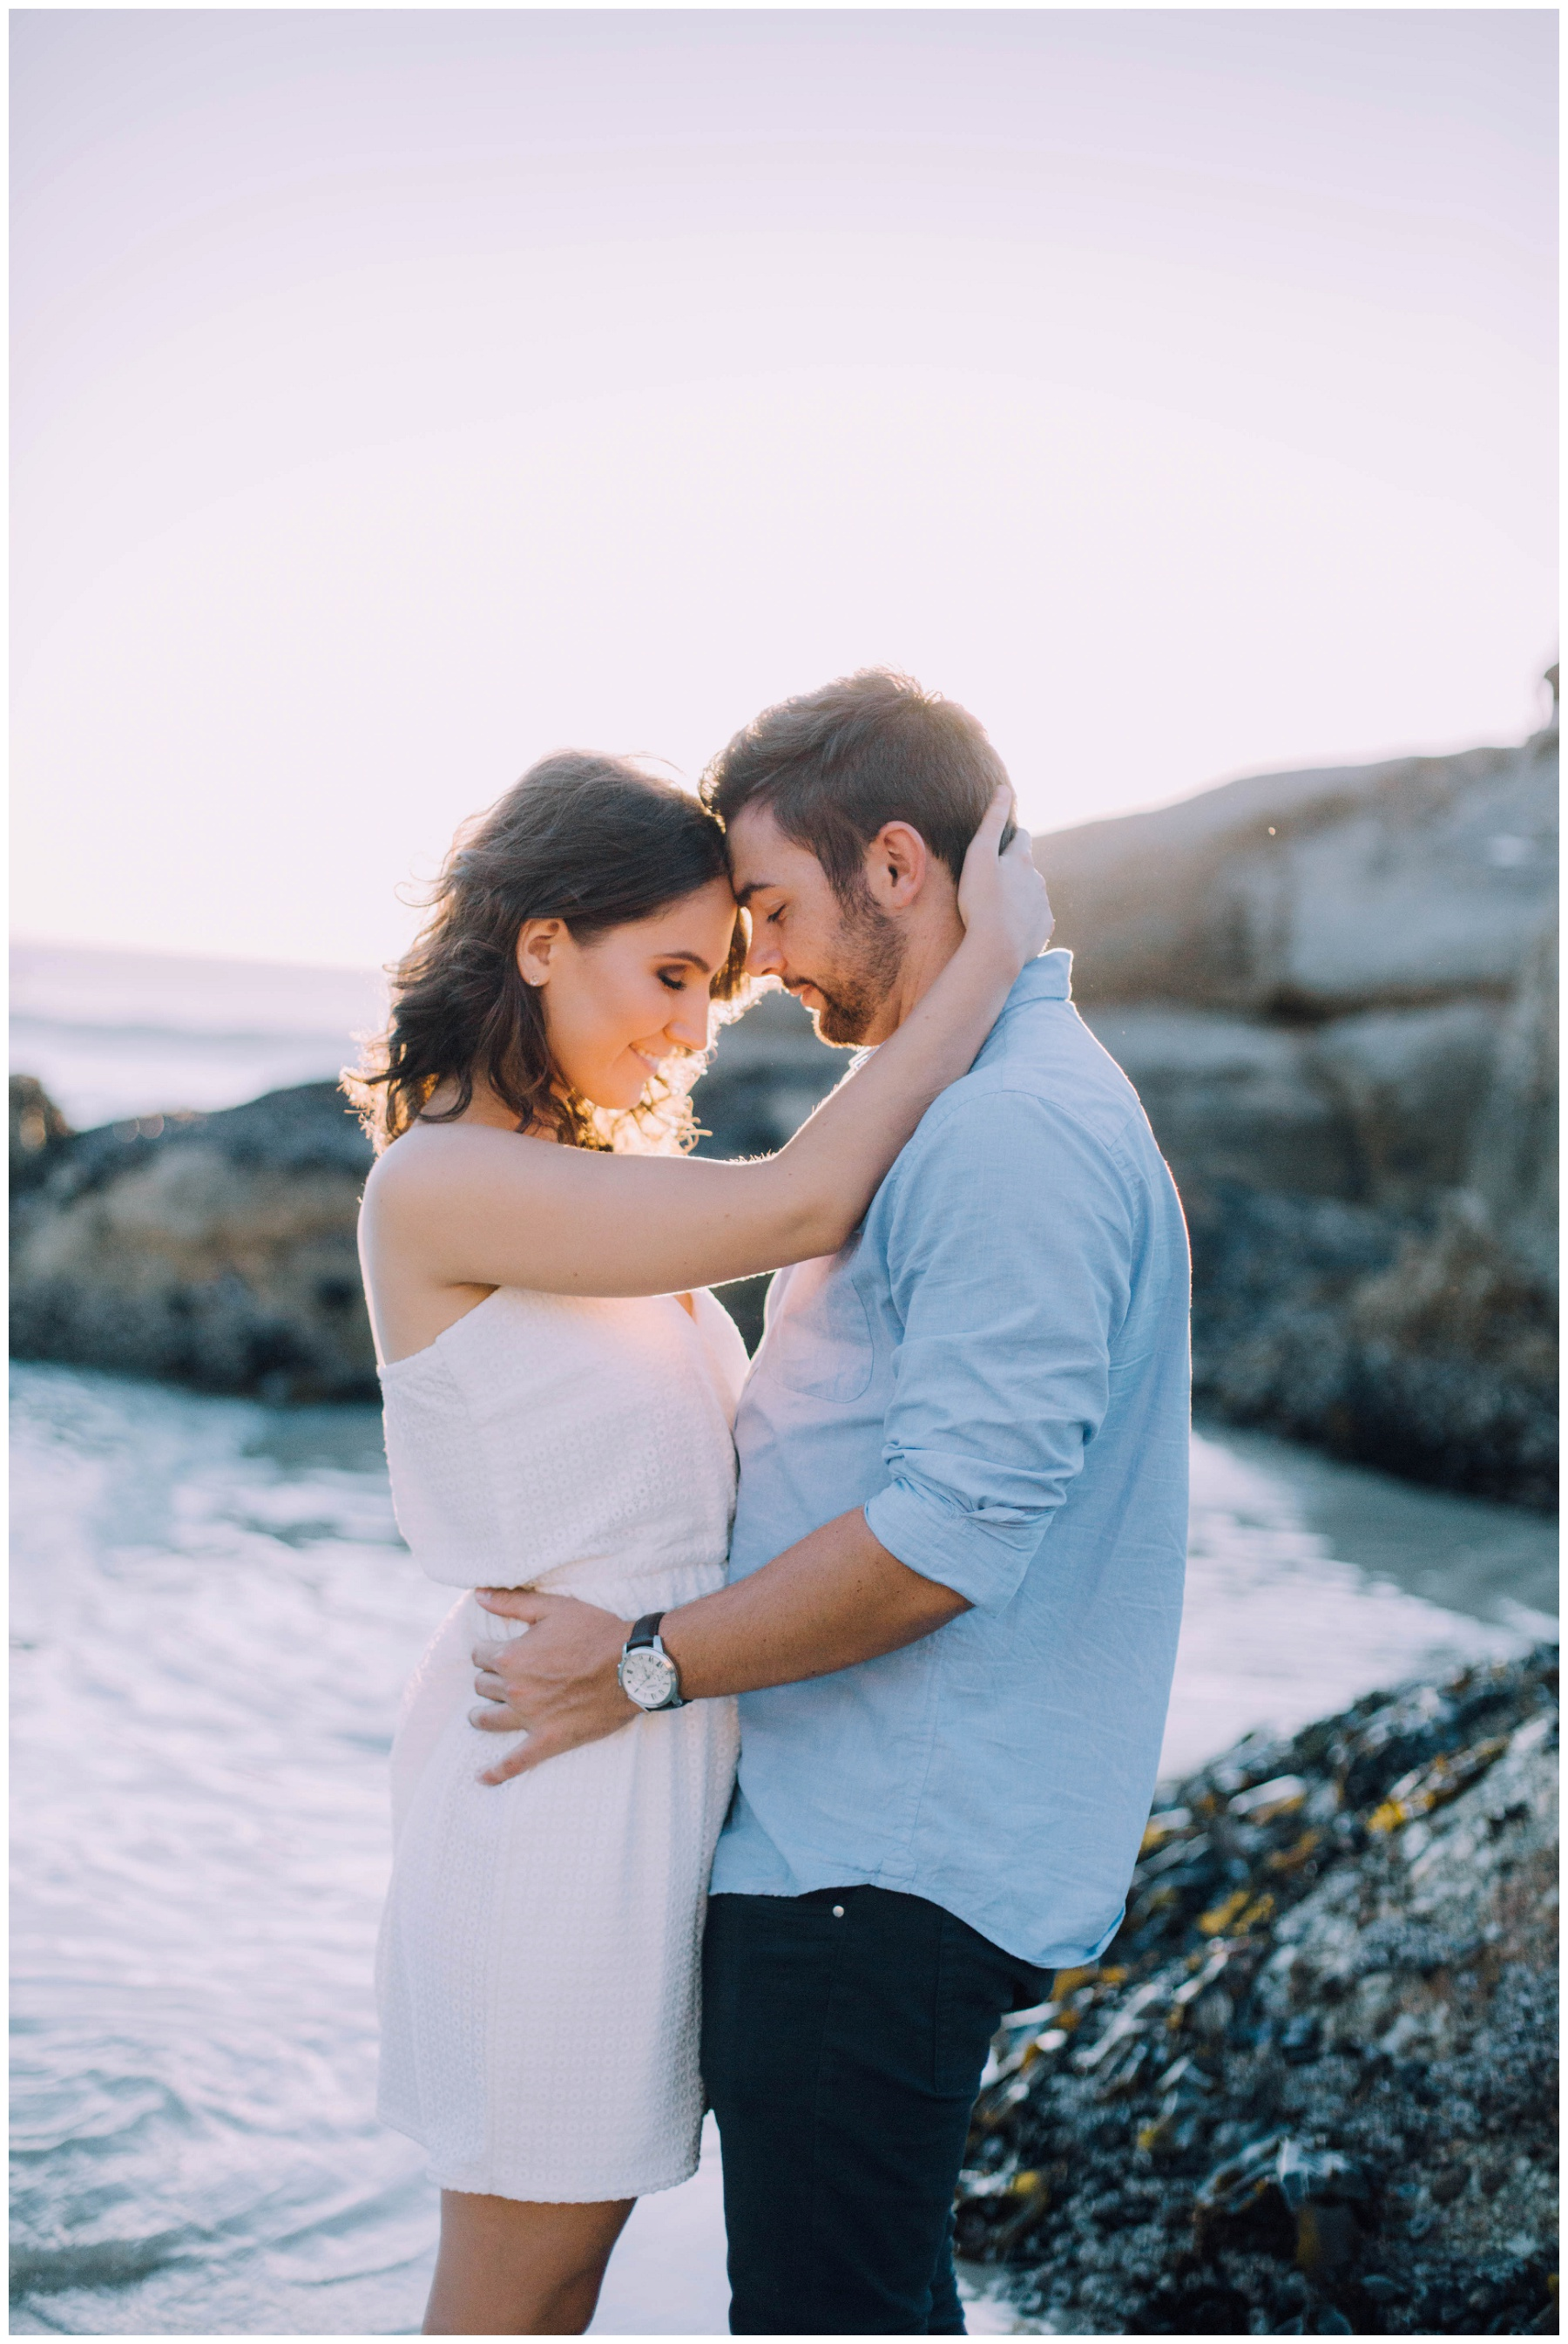 Ronel Kruger Cape Town Wedding and Lifestyle Photographer_8460.jpg